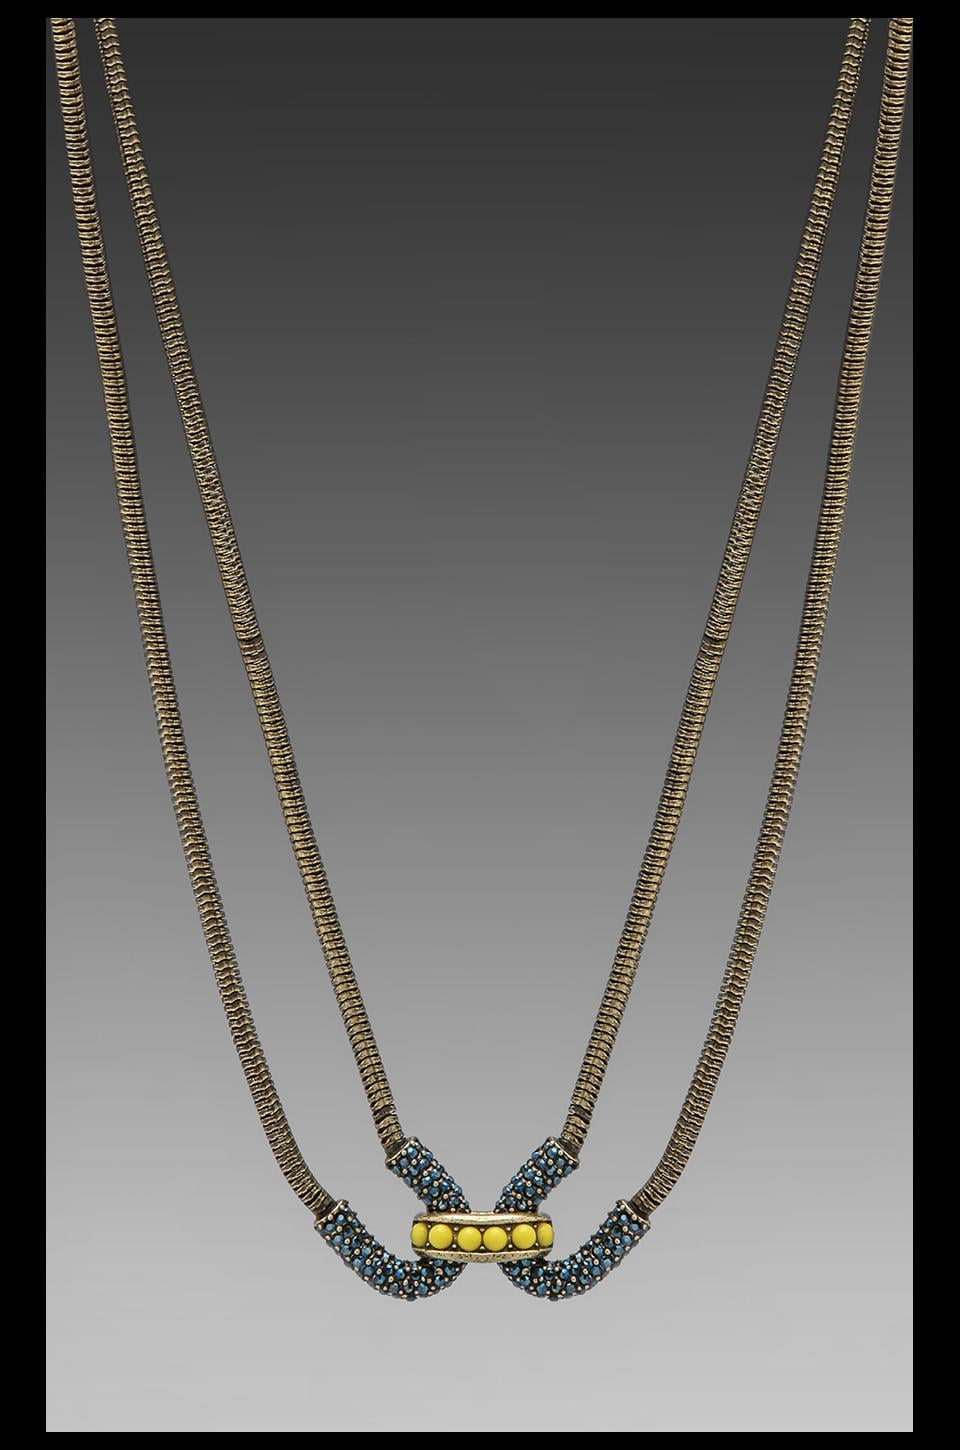 Giles & Brother Giles Encrusted Double Cortina Necklace in Citron & Crystal Metallic Blue